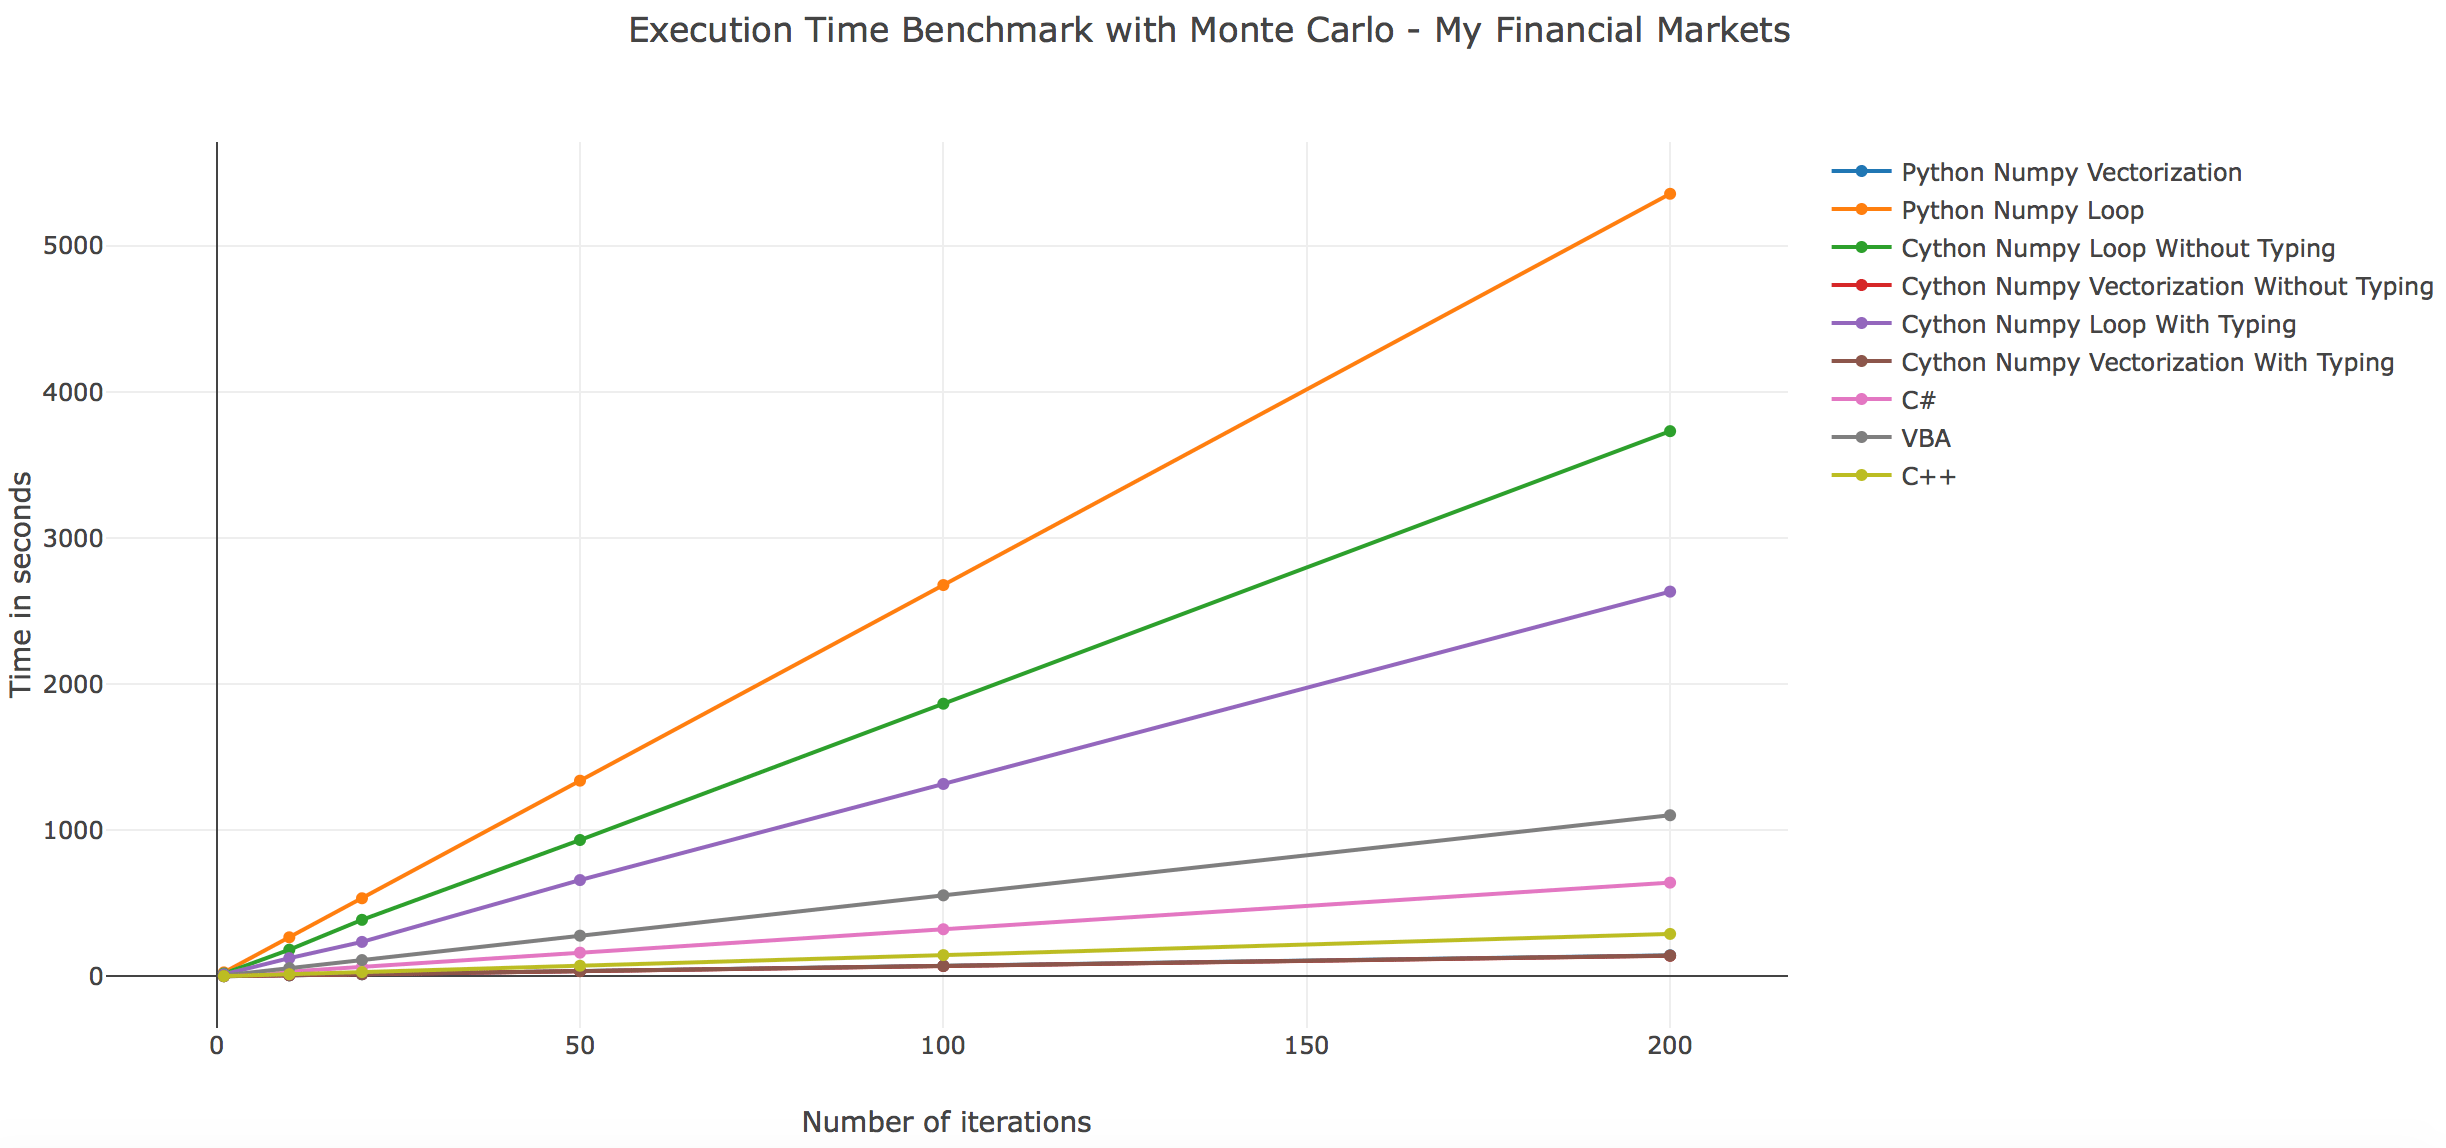 Vba Stock Simulation Speed Execution Benchmark On Monte Carlo My Financial Markets